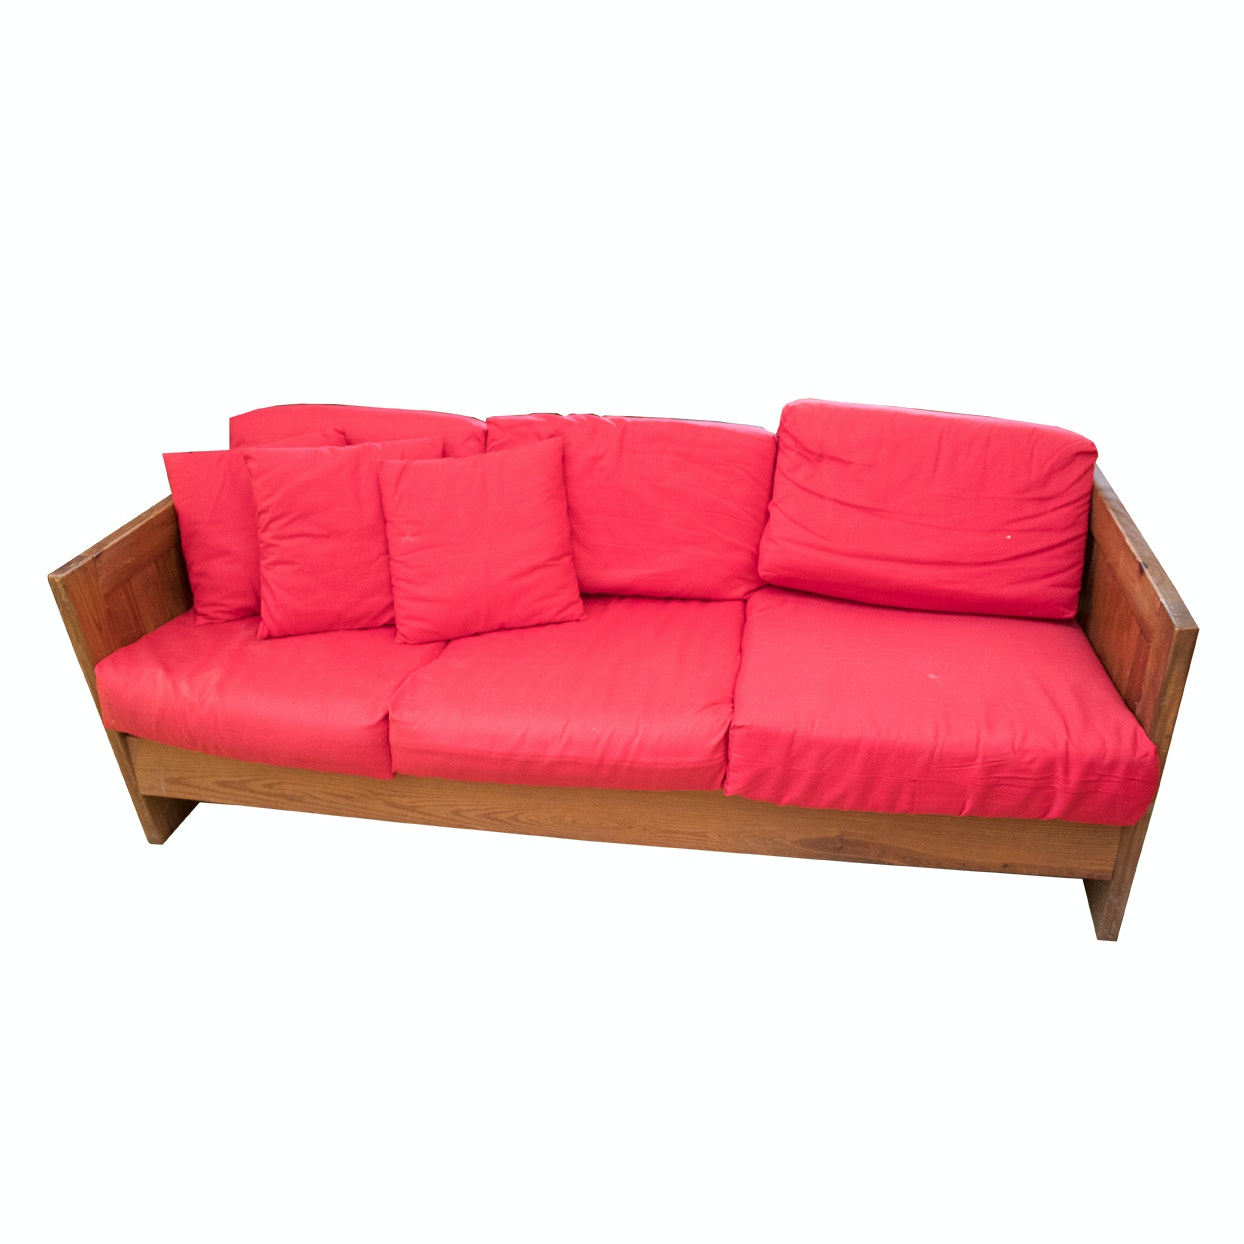 Vintage Wood-Framed Brady Sofa